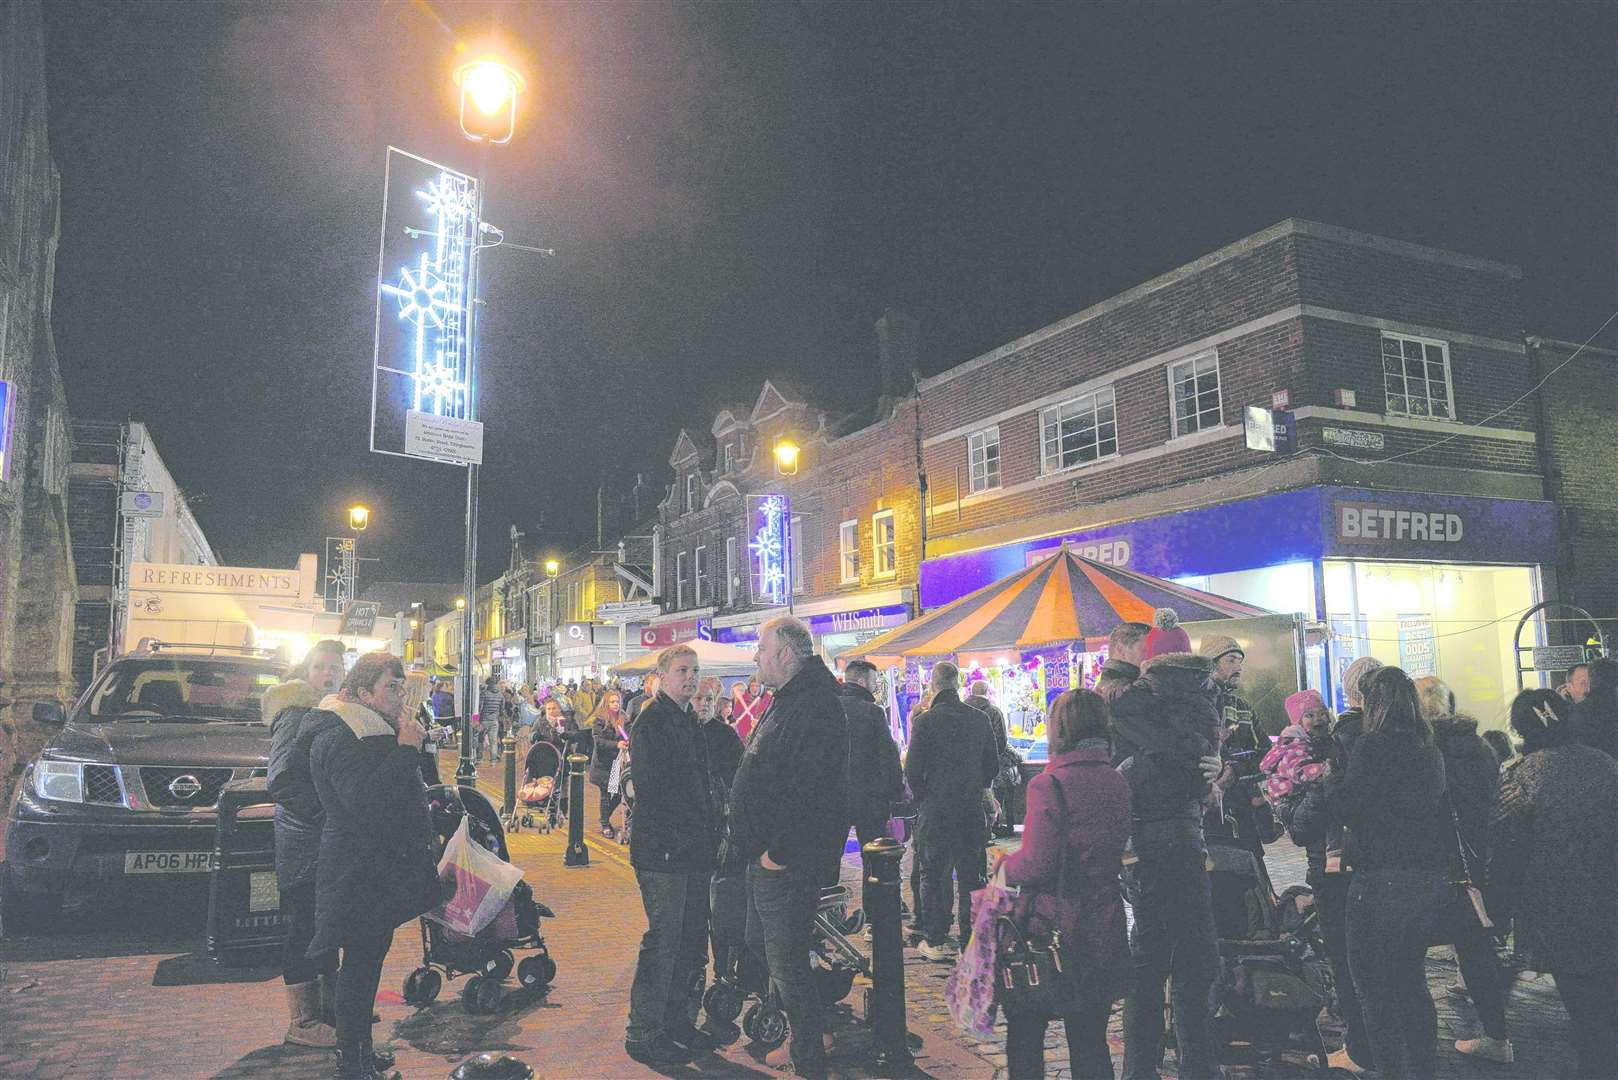 The Christmas Lights in Sittingbourne on Saturday evening. Picture: Chris Davey FM4126565 (4663829)